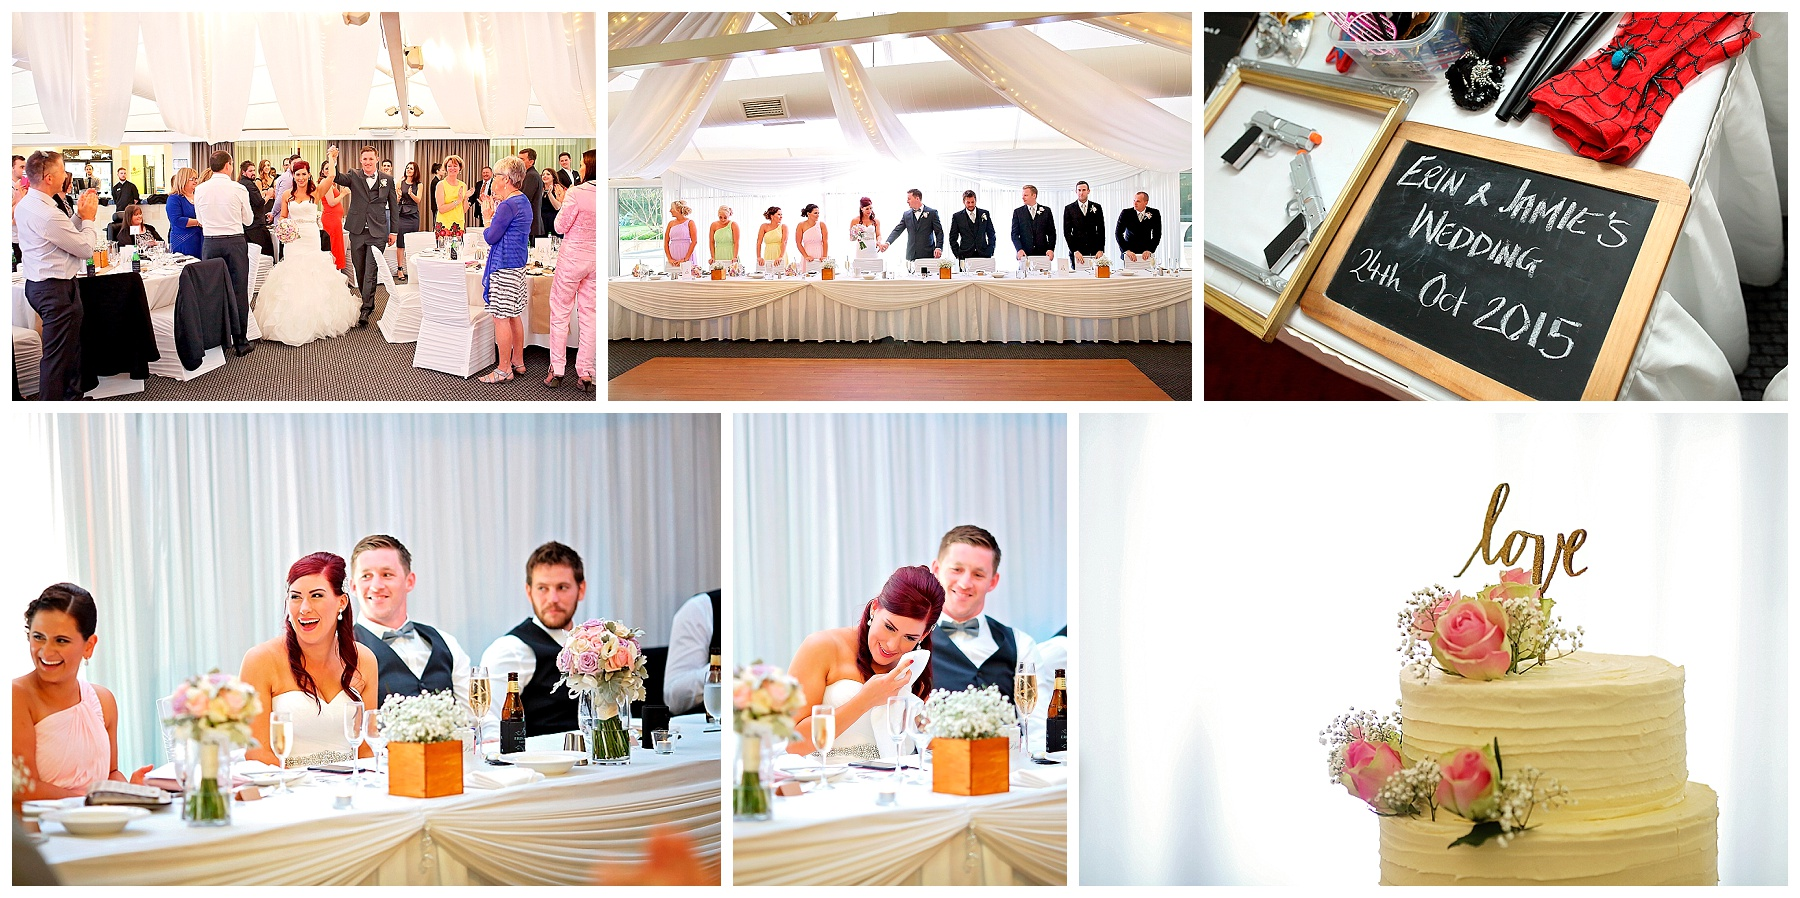 Joondalup Resort Marquee Wedding